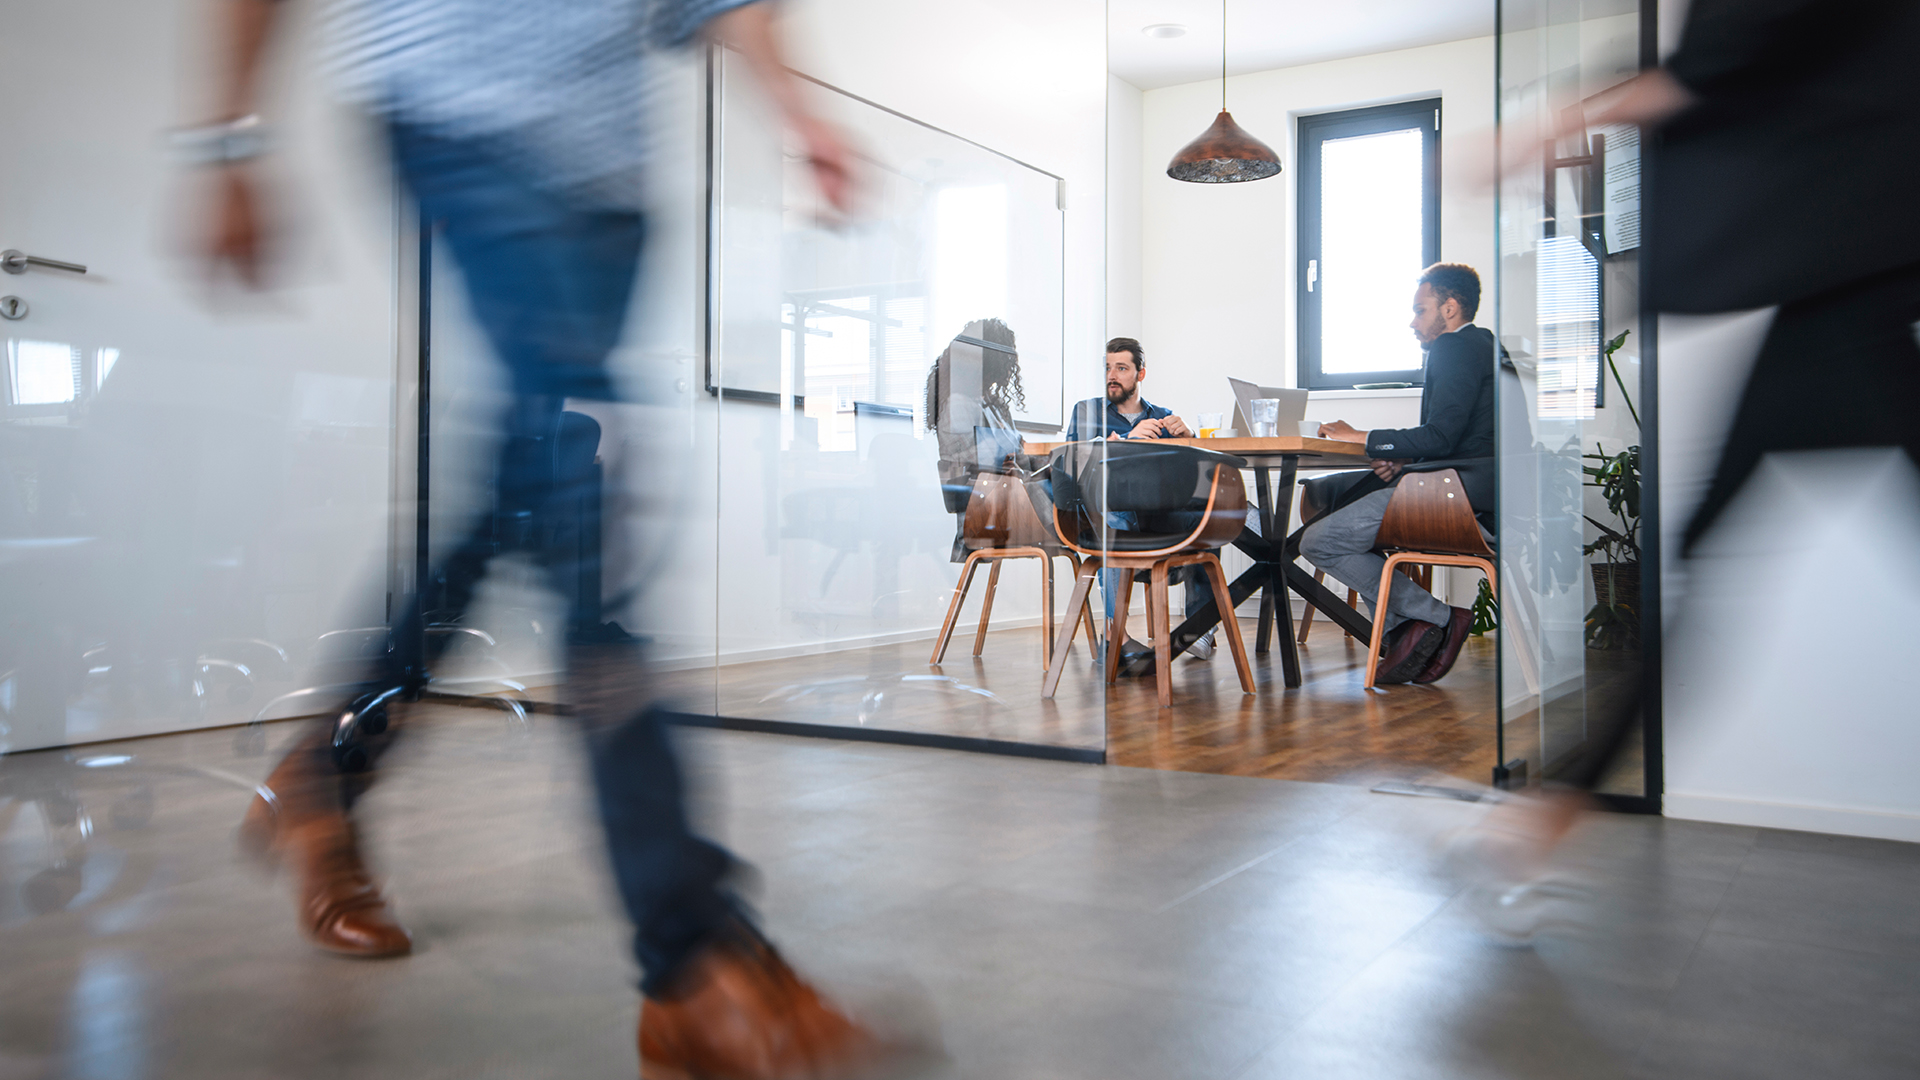 Open office with concrete floors